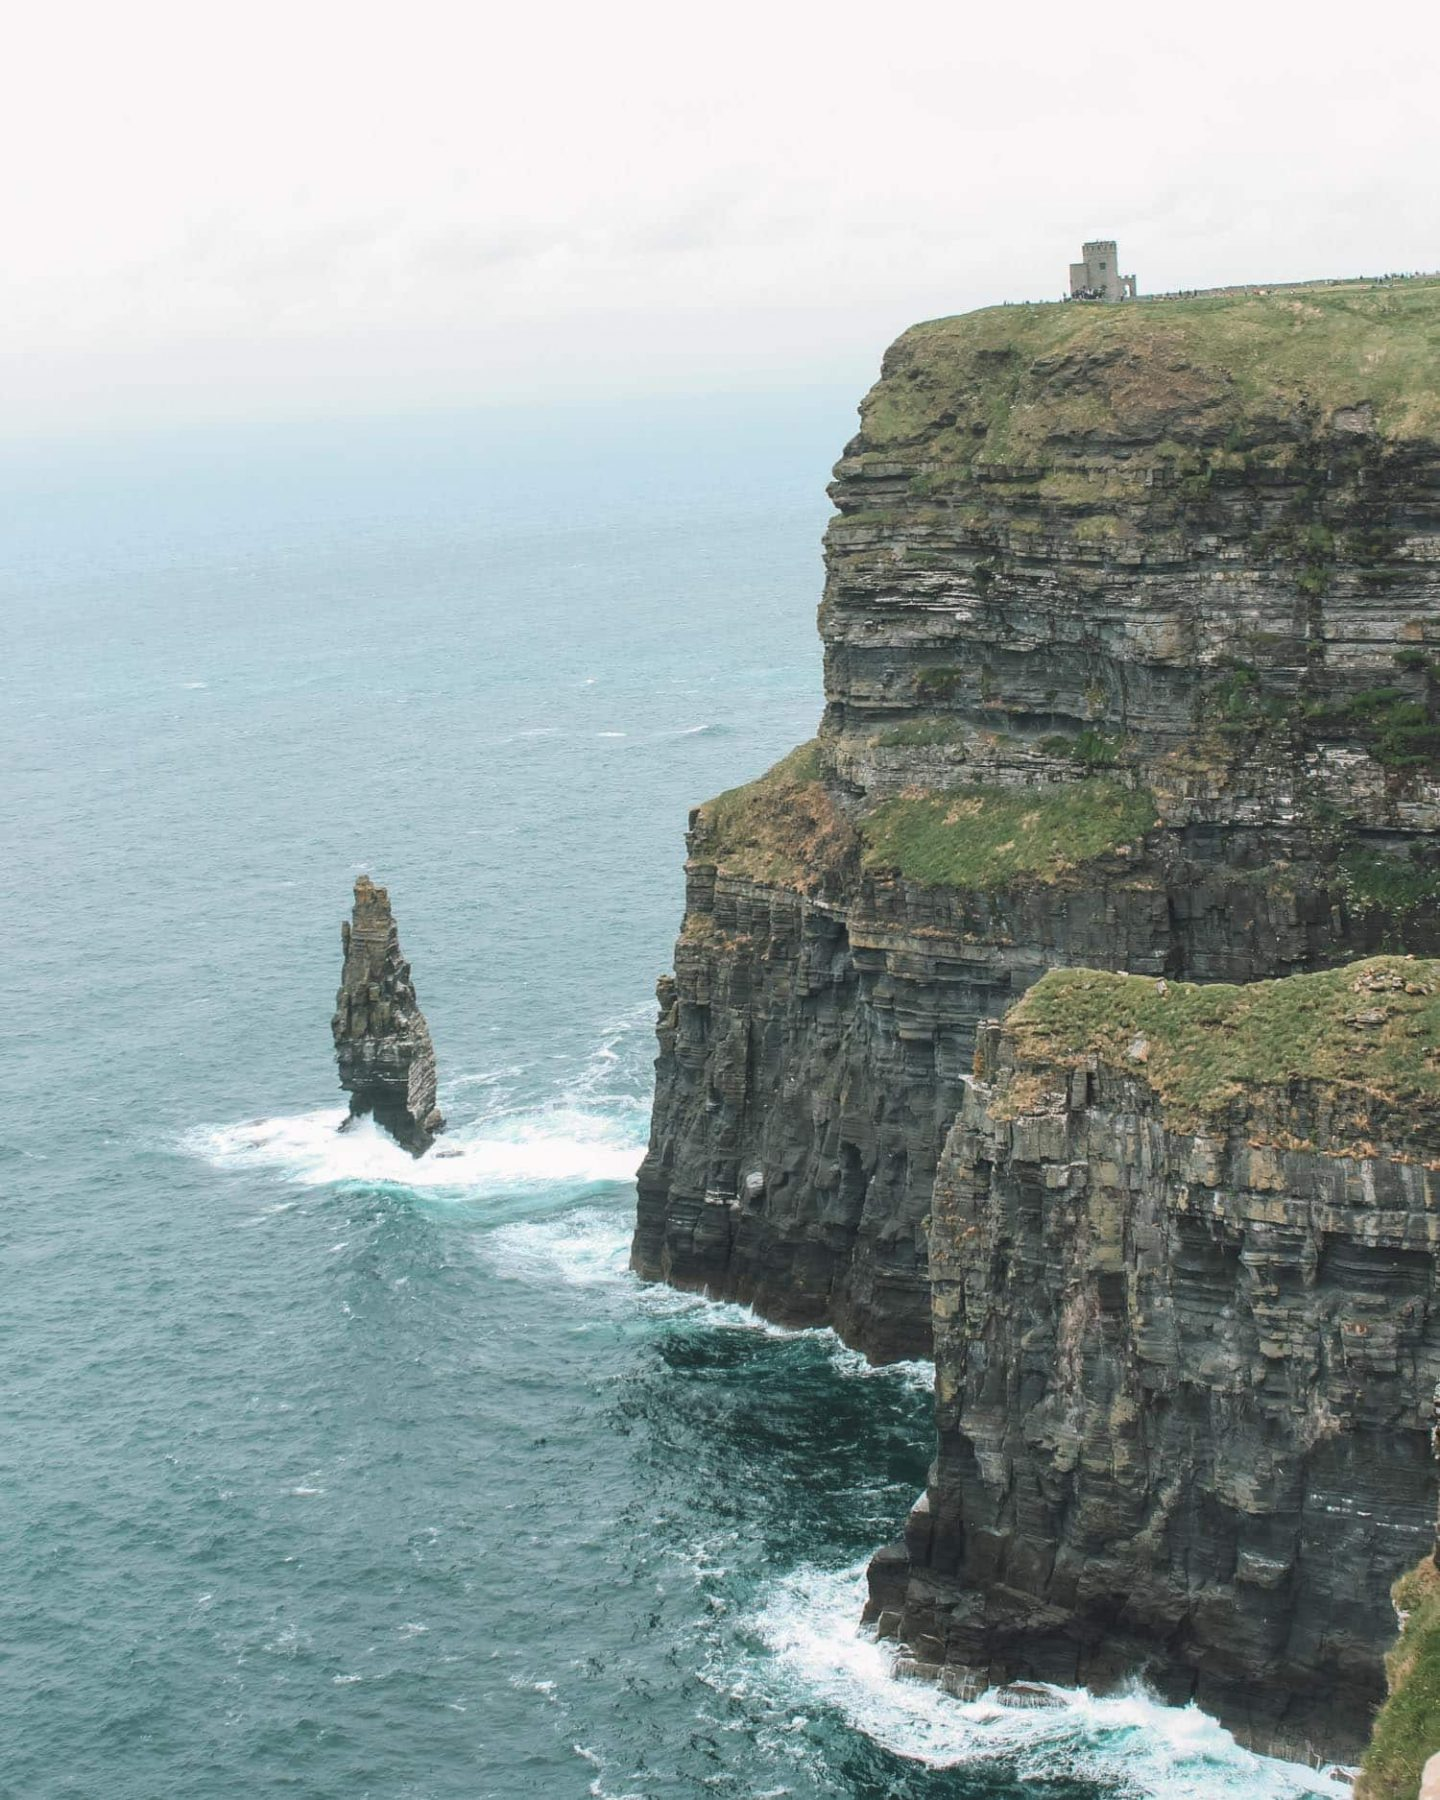 obriens tower at the cliffs of moher in ireland